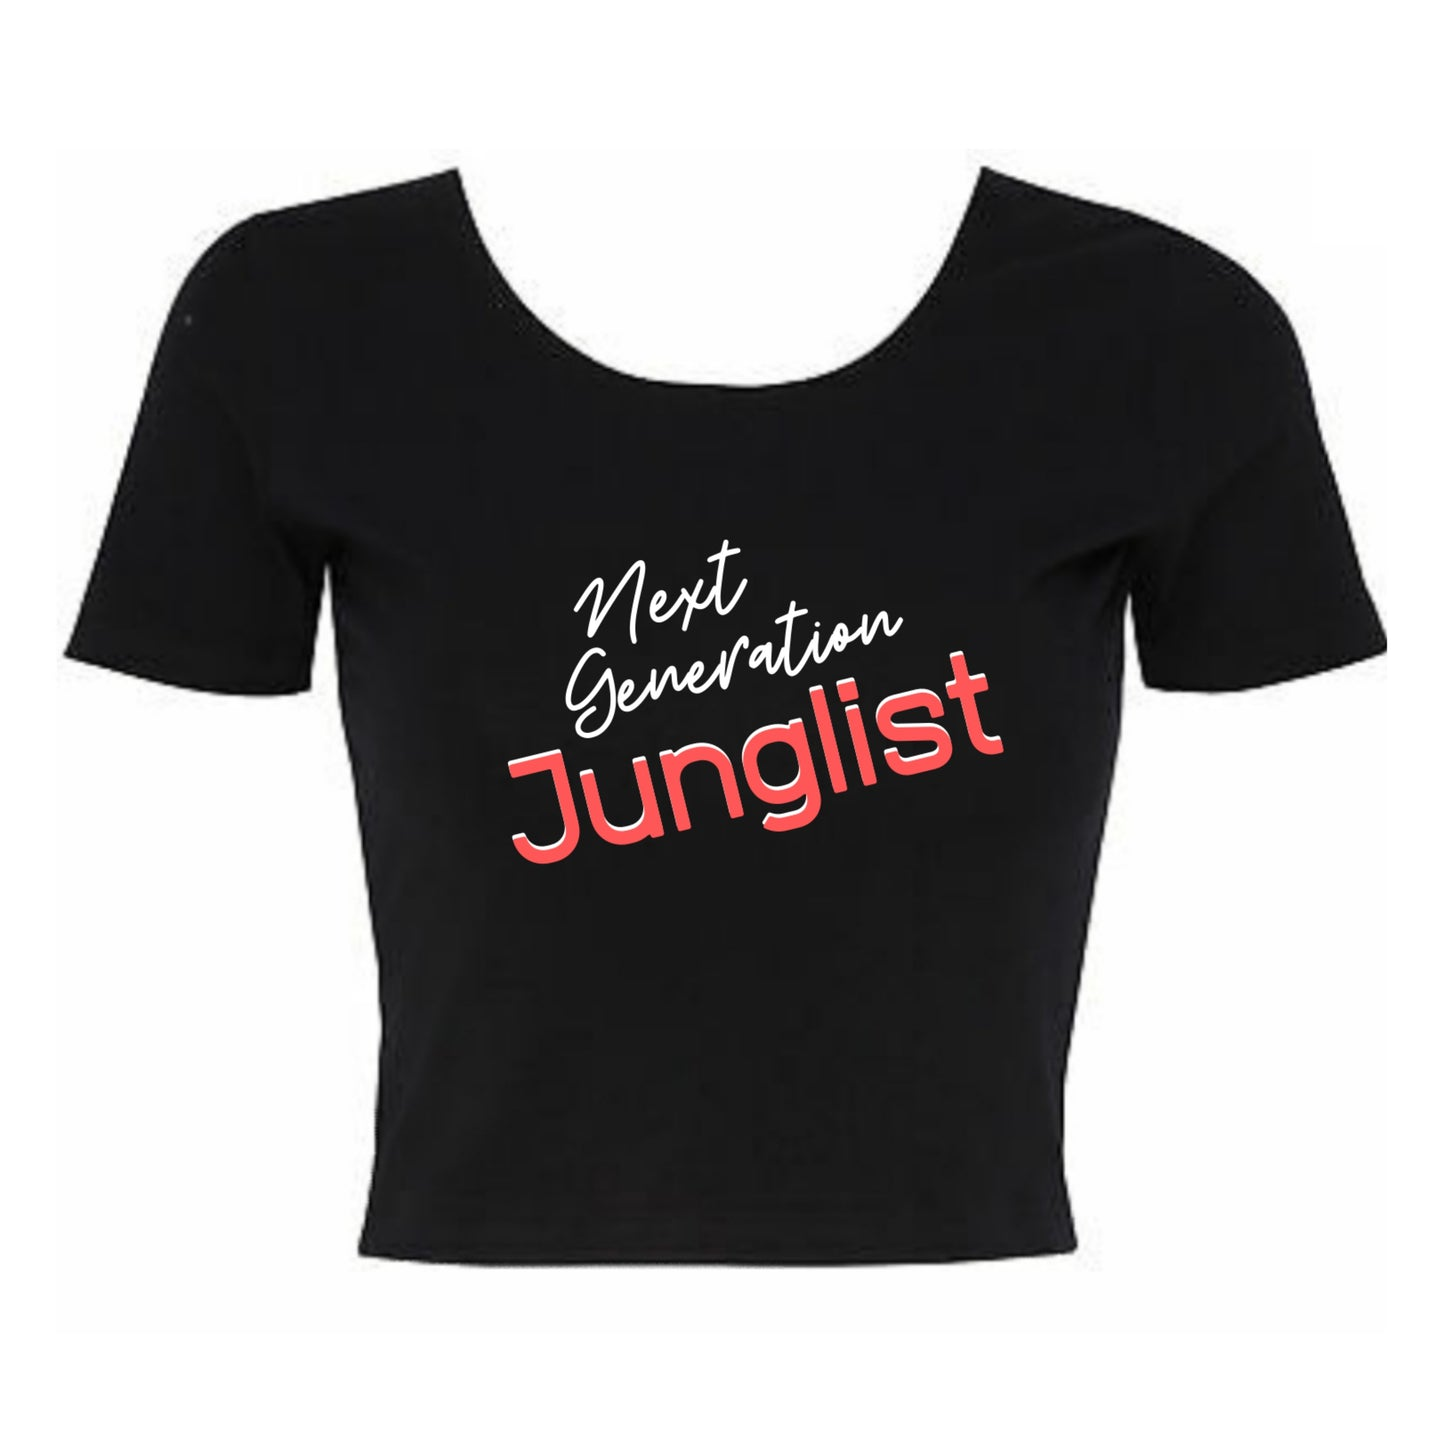 Next Generation Junglist Cropped TShirt